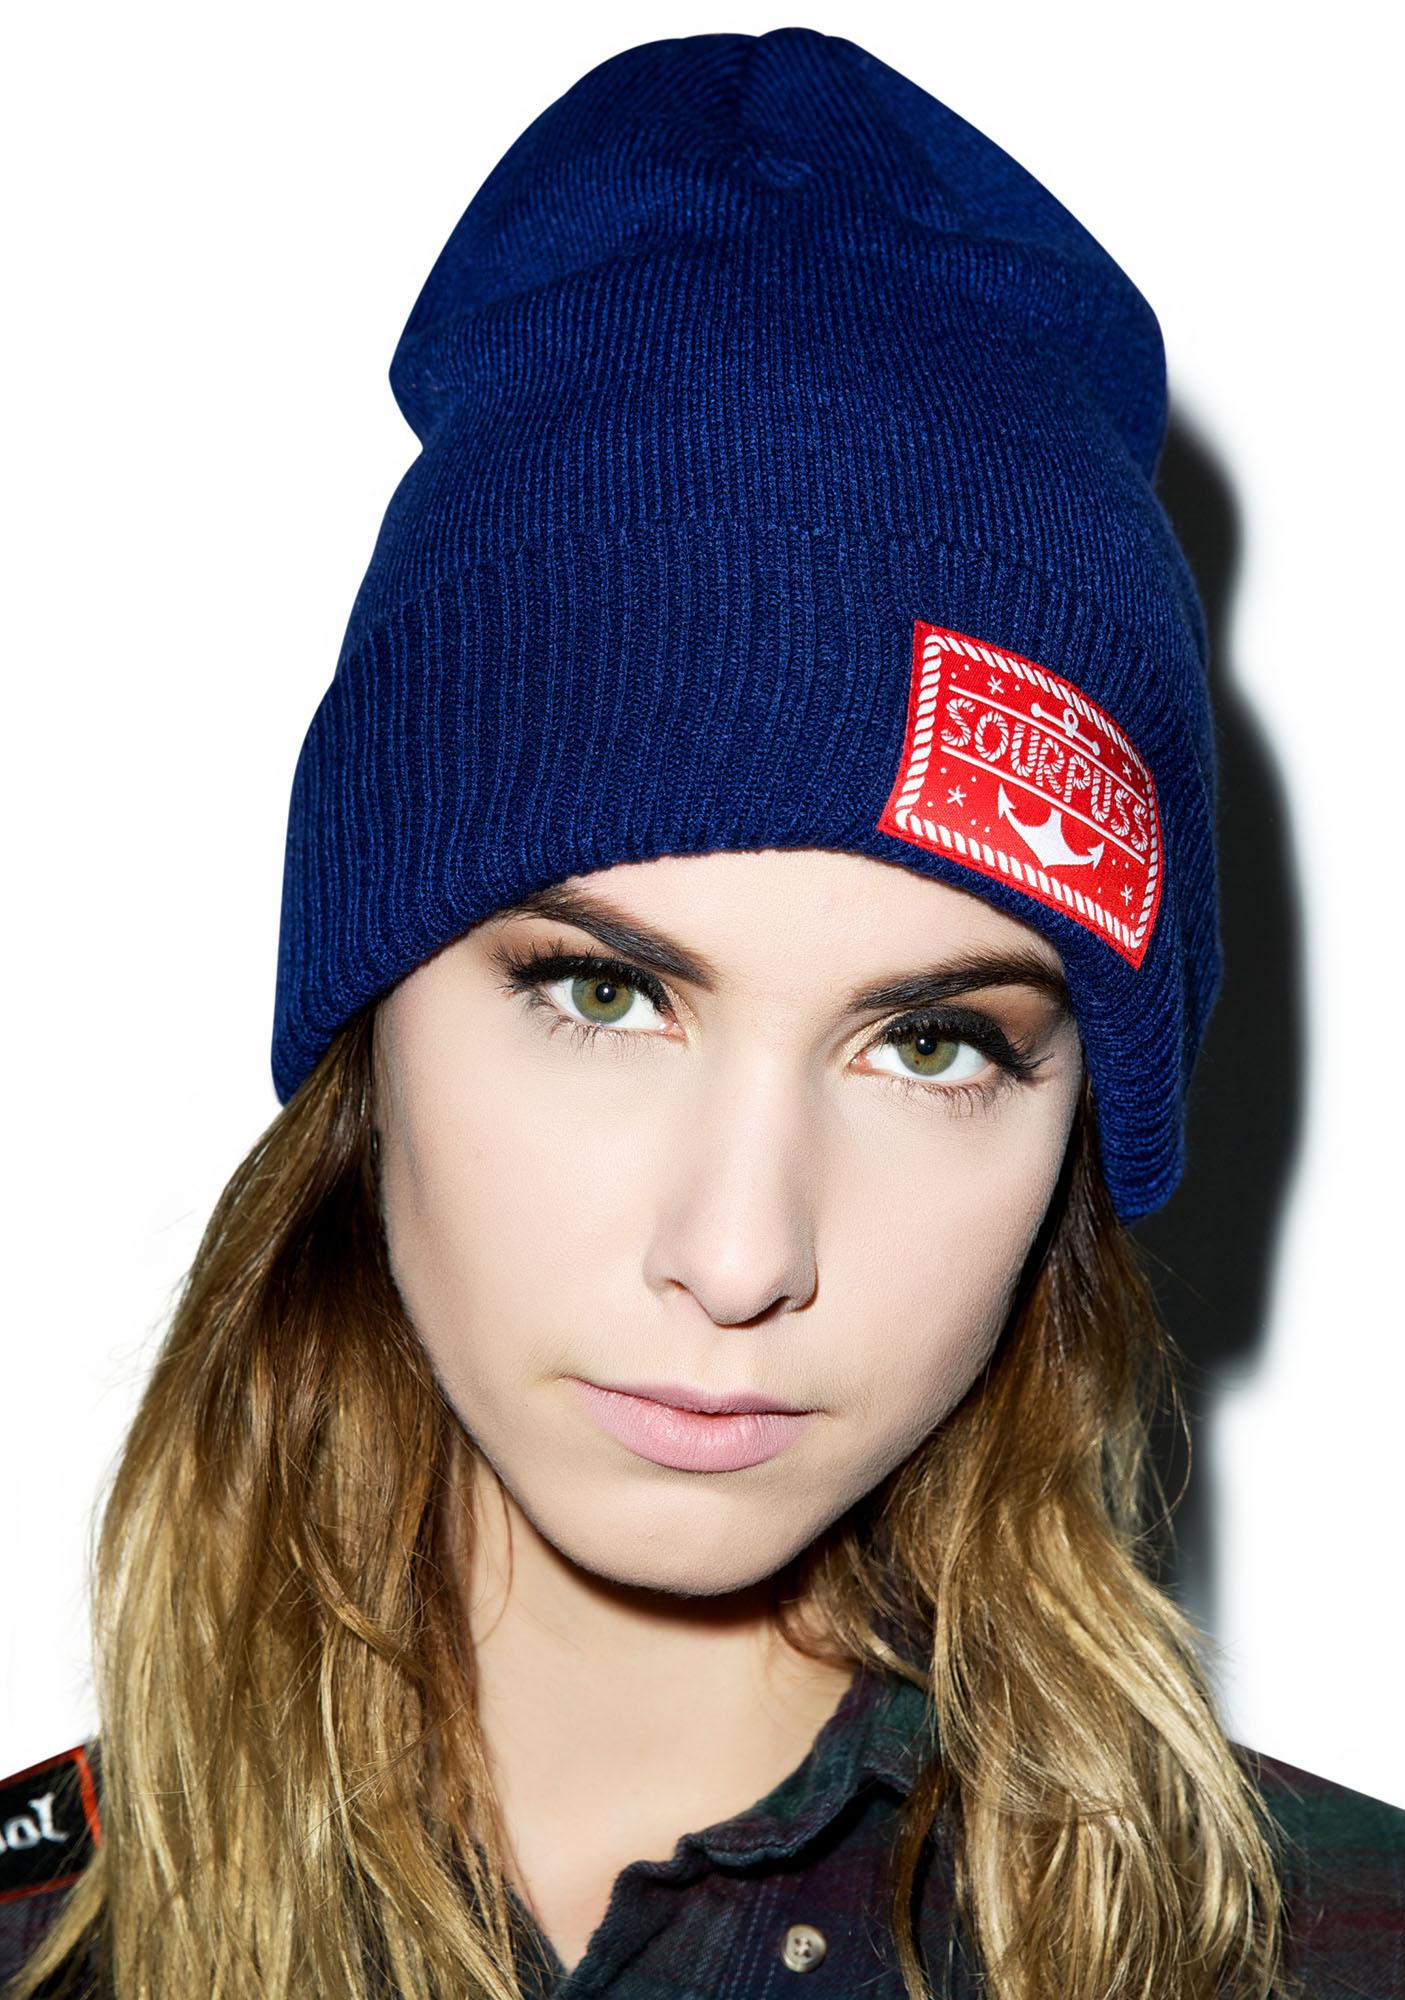 Sourpuss Clothing Anchor Logo Beanie